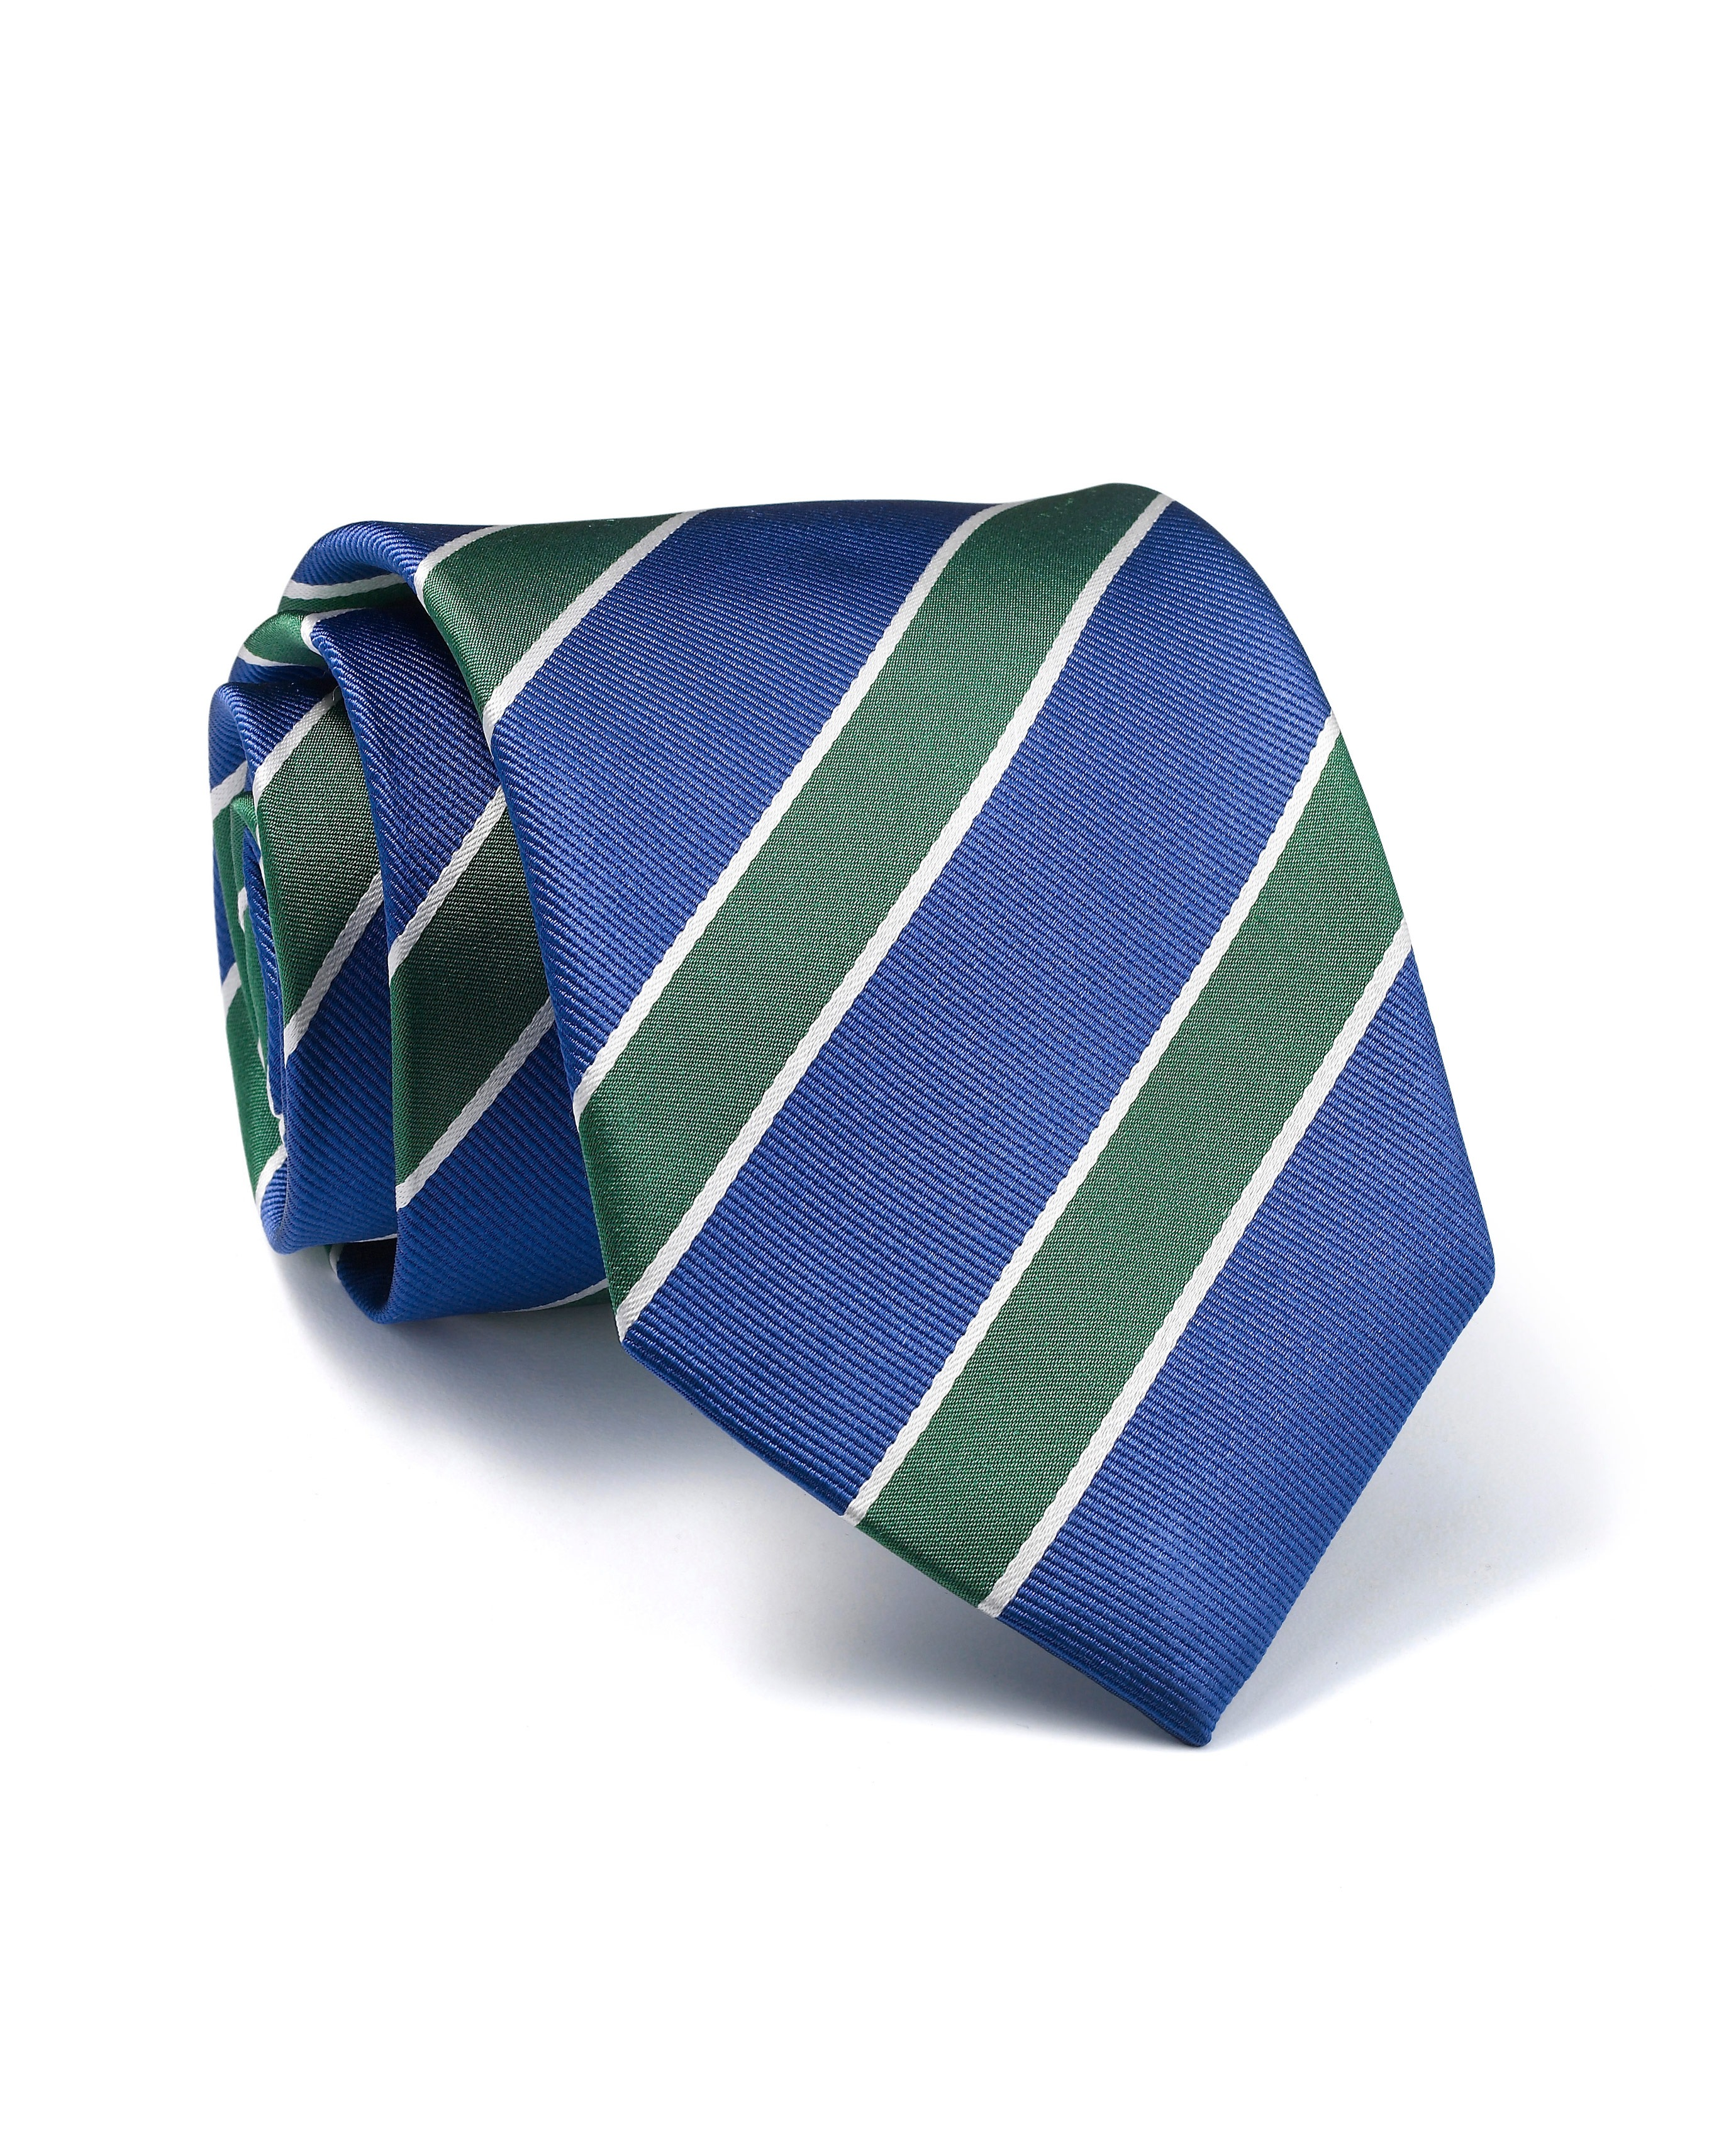 972c6bf2bed05b Navy White Green Stripe Silk Tie - Accessories | Savile Row Company